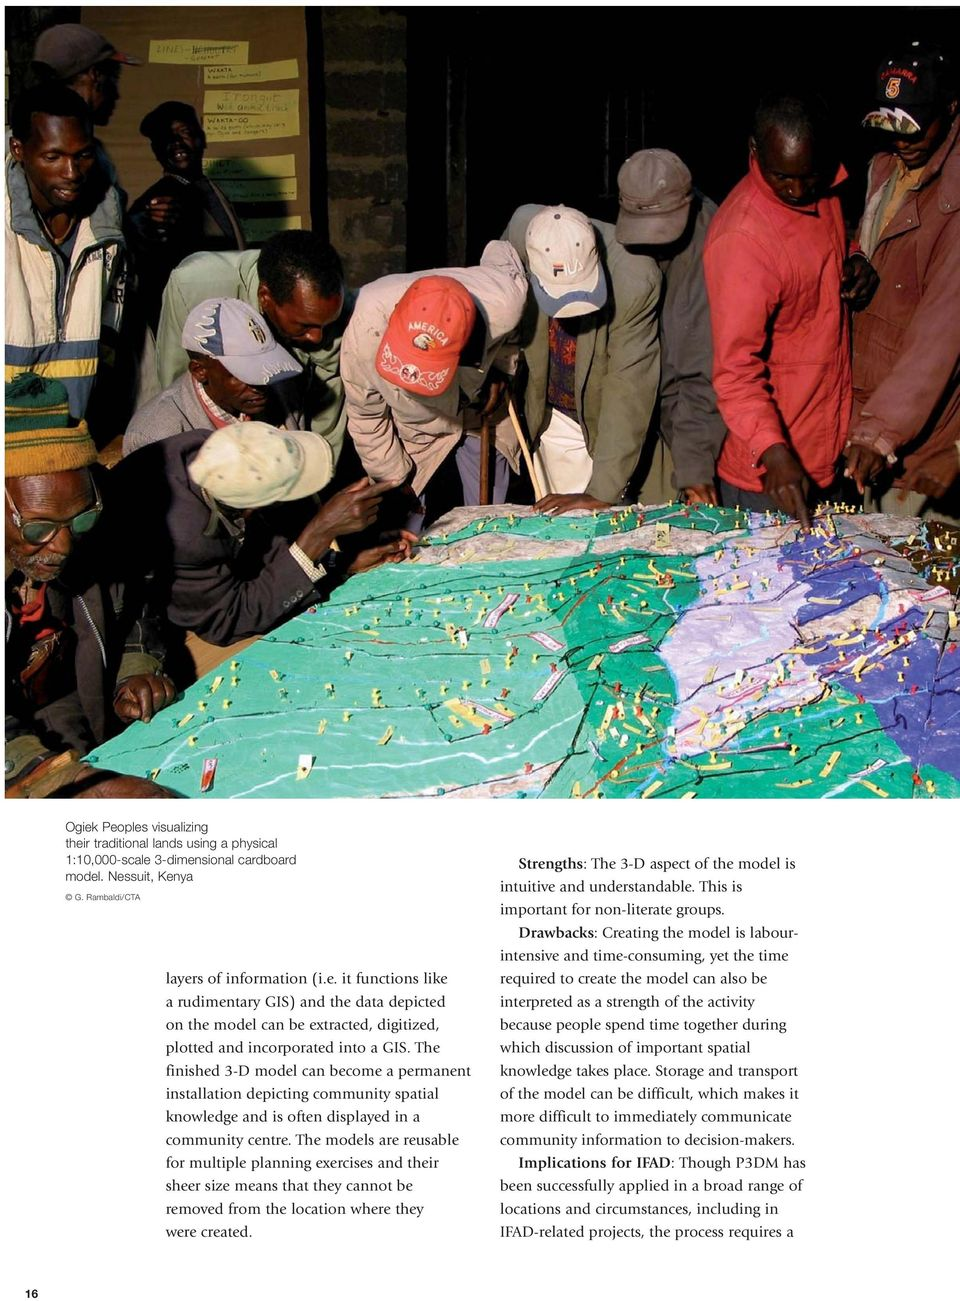 The models are reusable for multiple planning exercises and their sheer size means that they cannot be removed from the location where they were created.